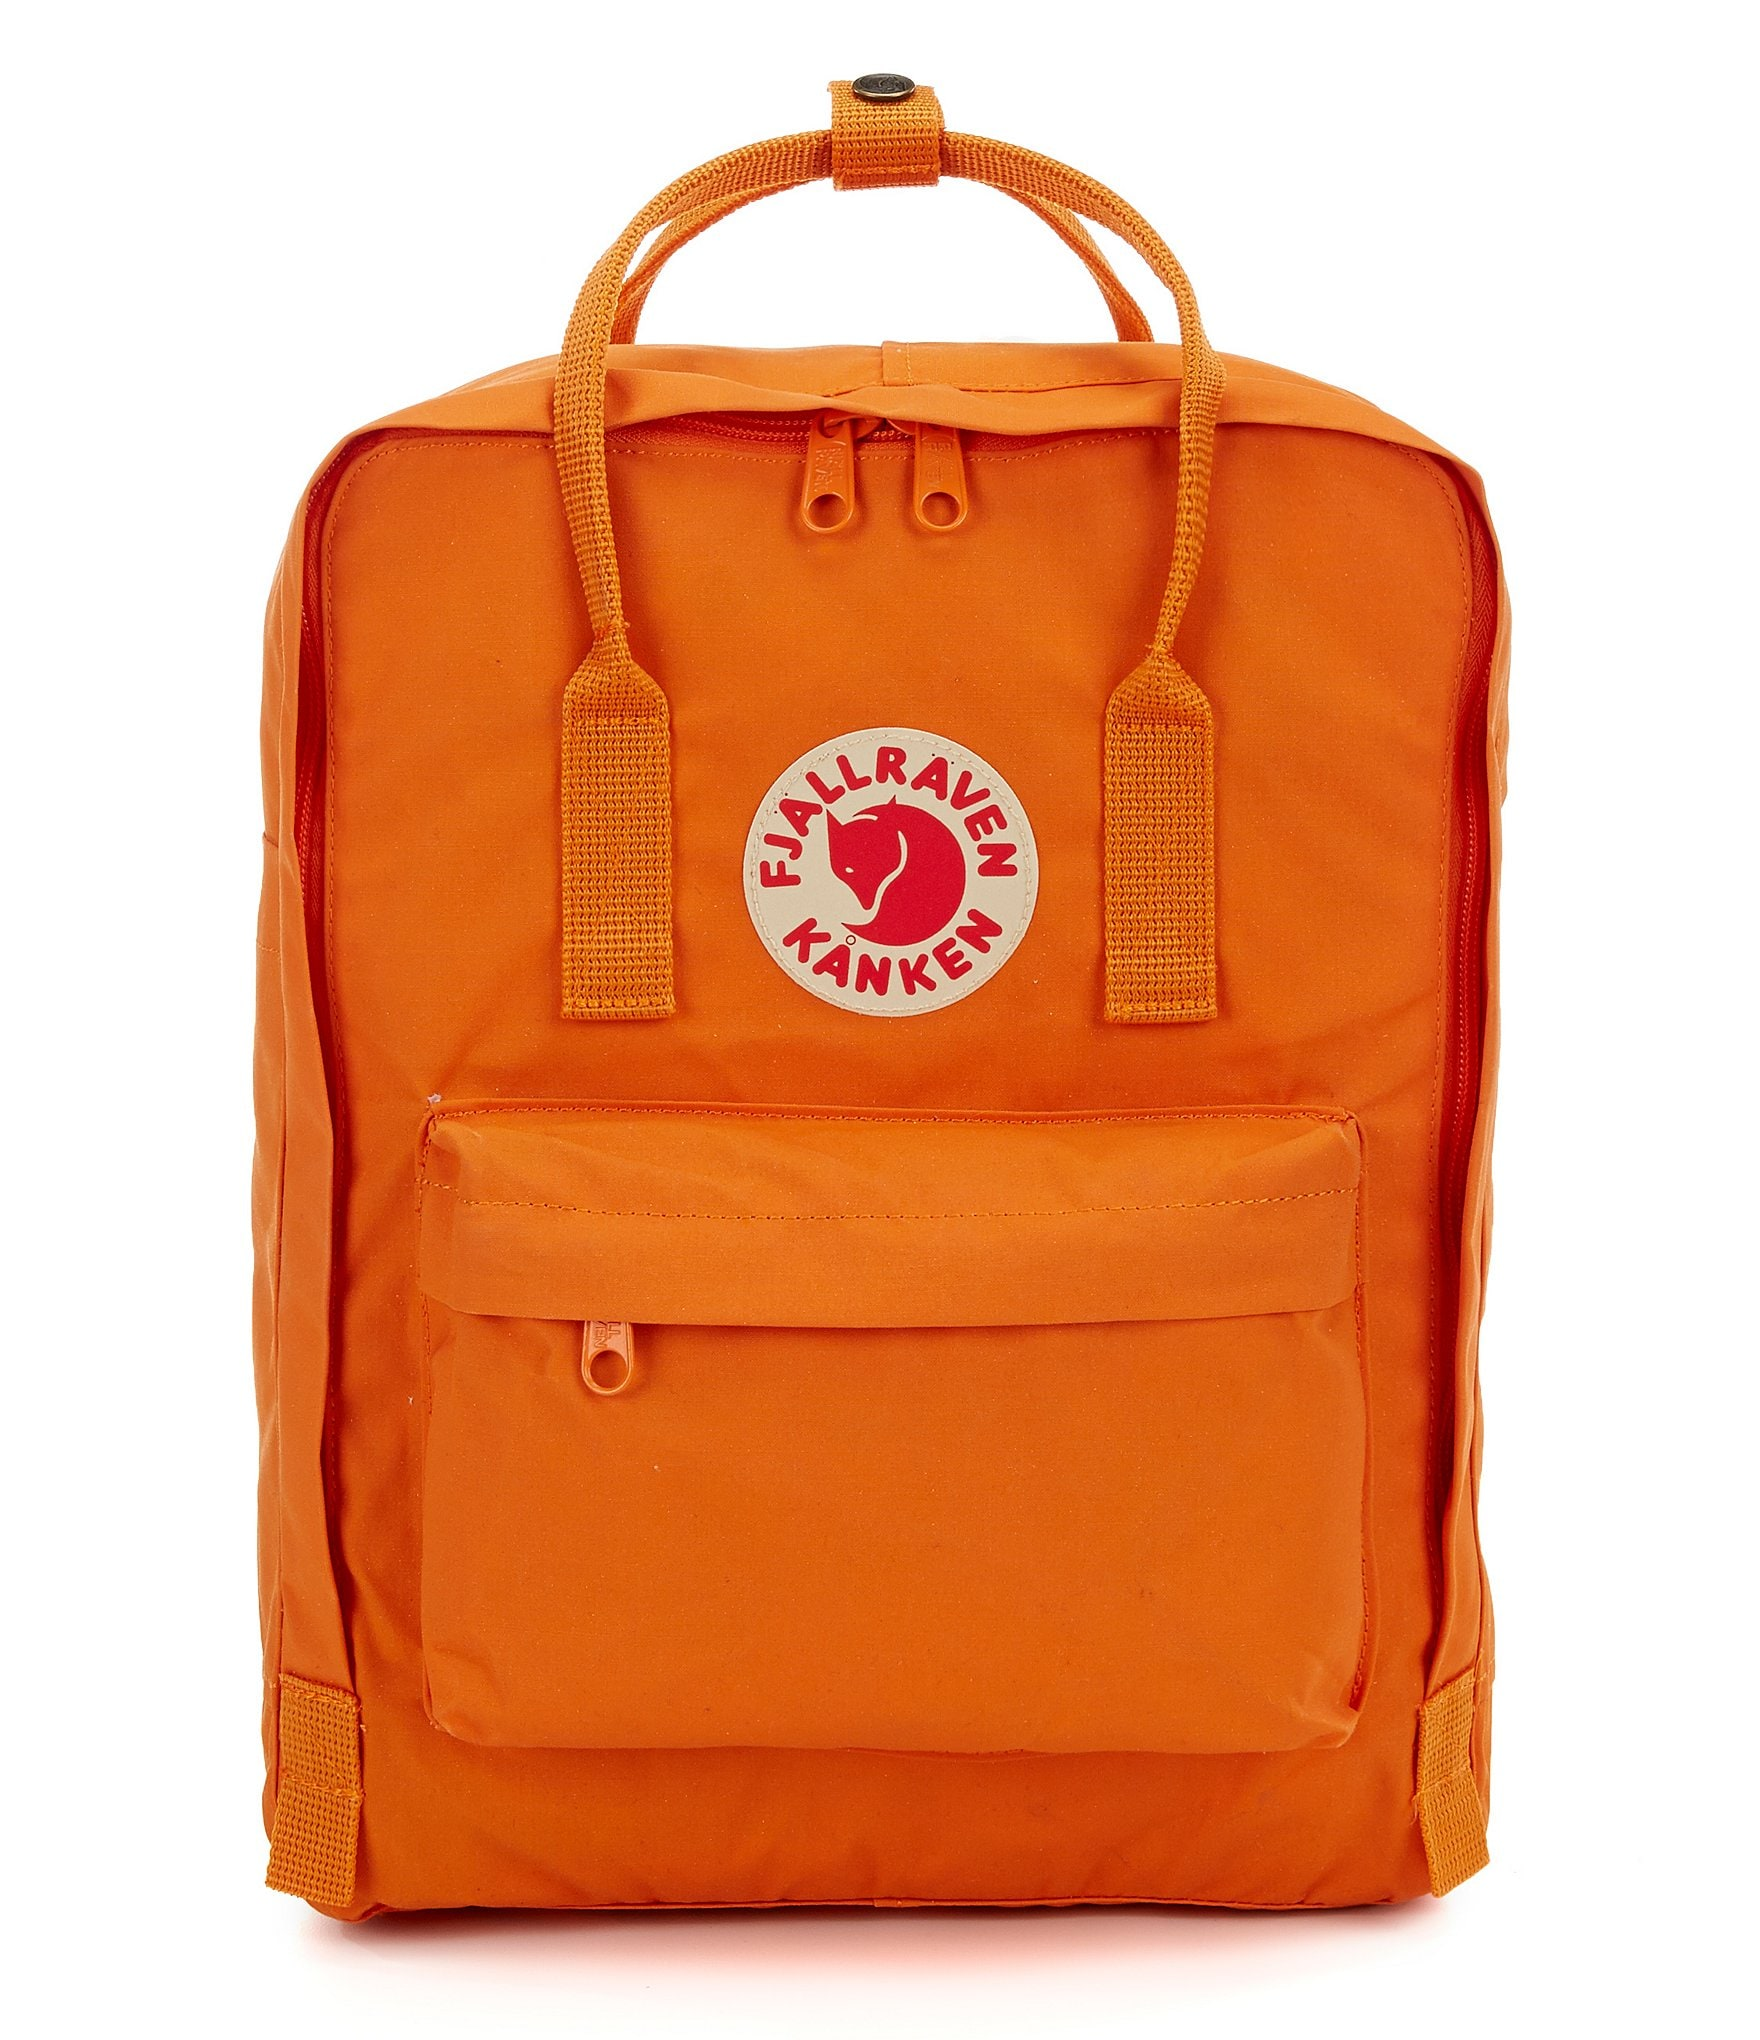 fjallraven the classic kanken backpack | dillards